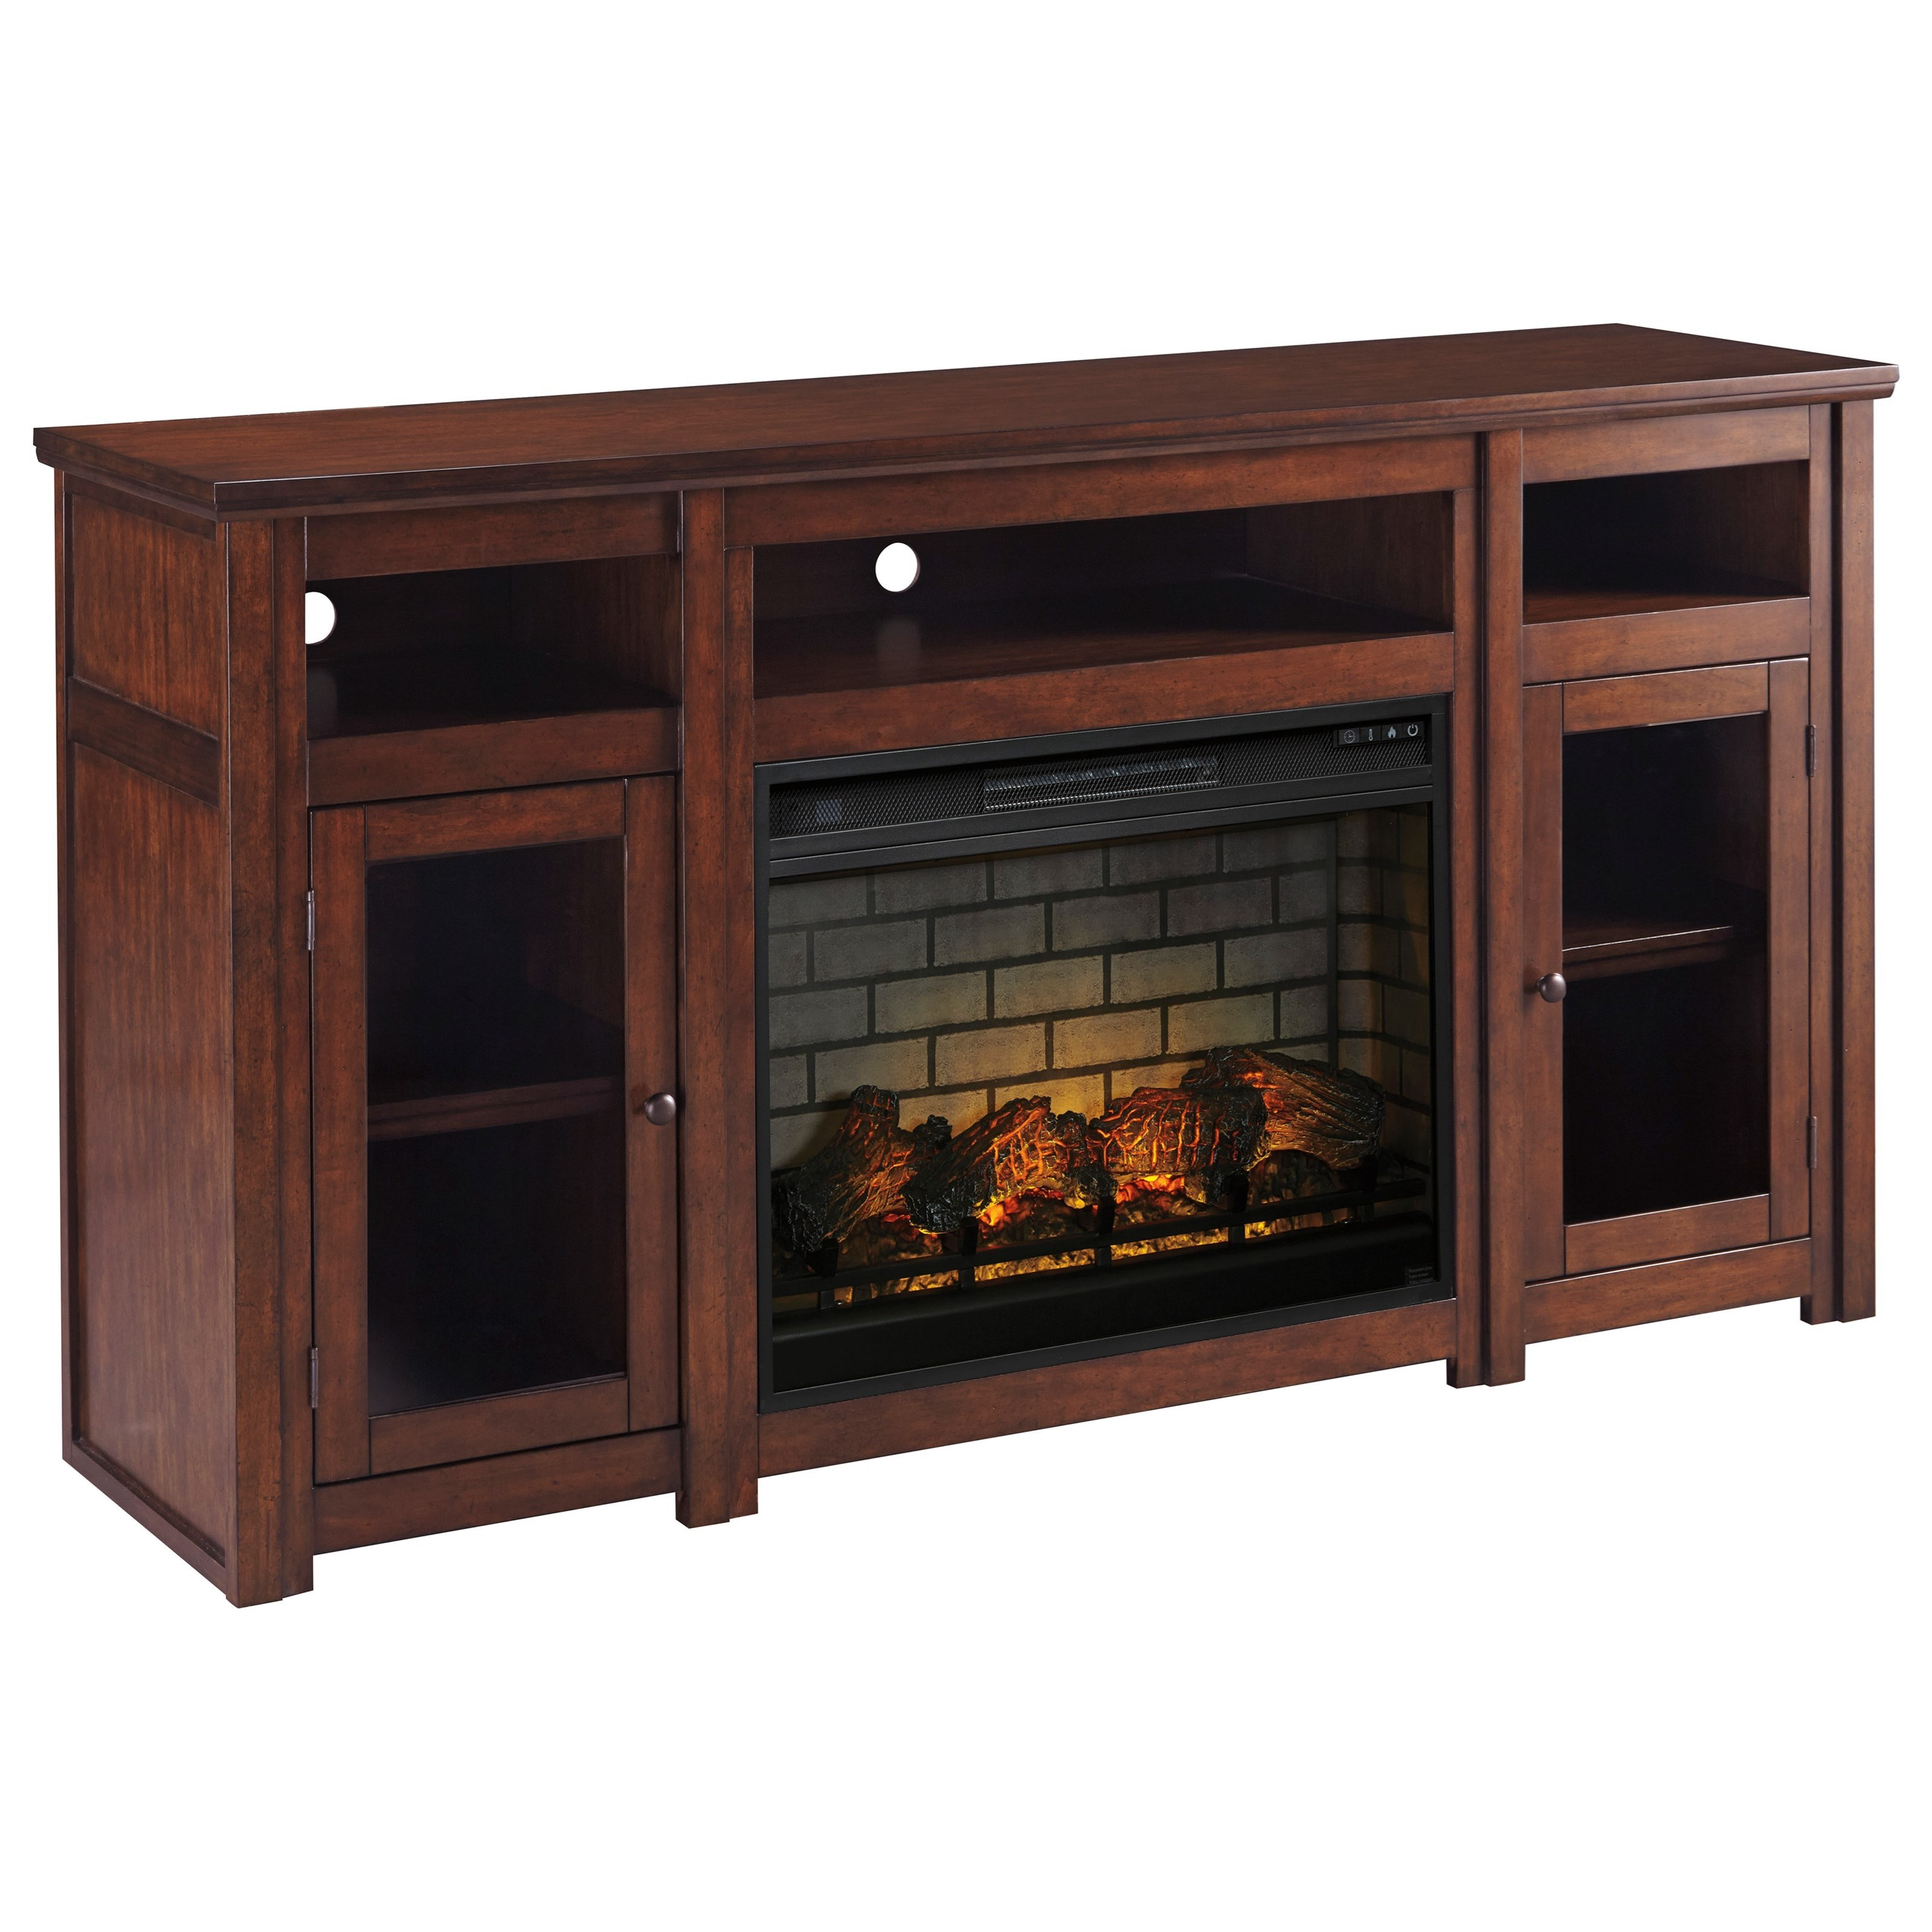 Harpan Extra Large TV Stand with Fireplace Insert by Signature Design by Ashley at Furniture Fair - North Carolina